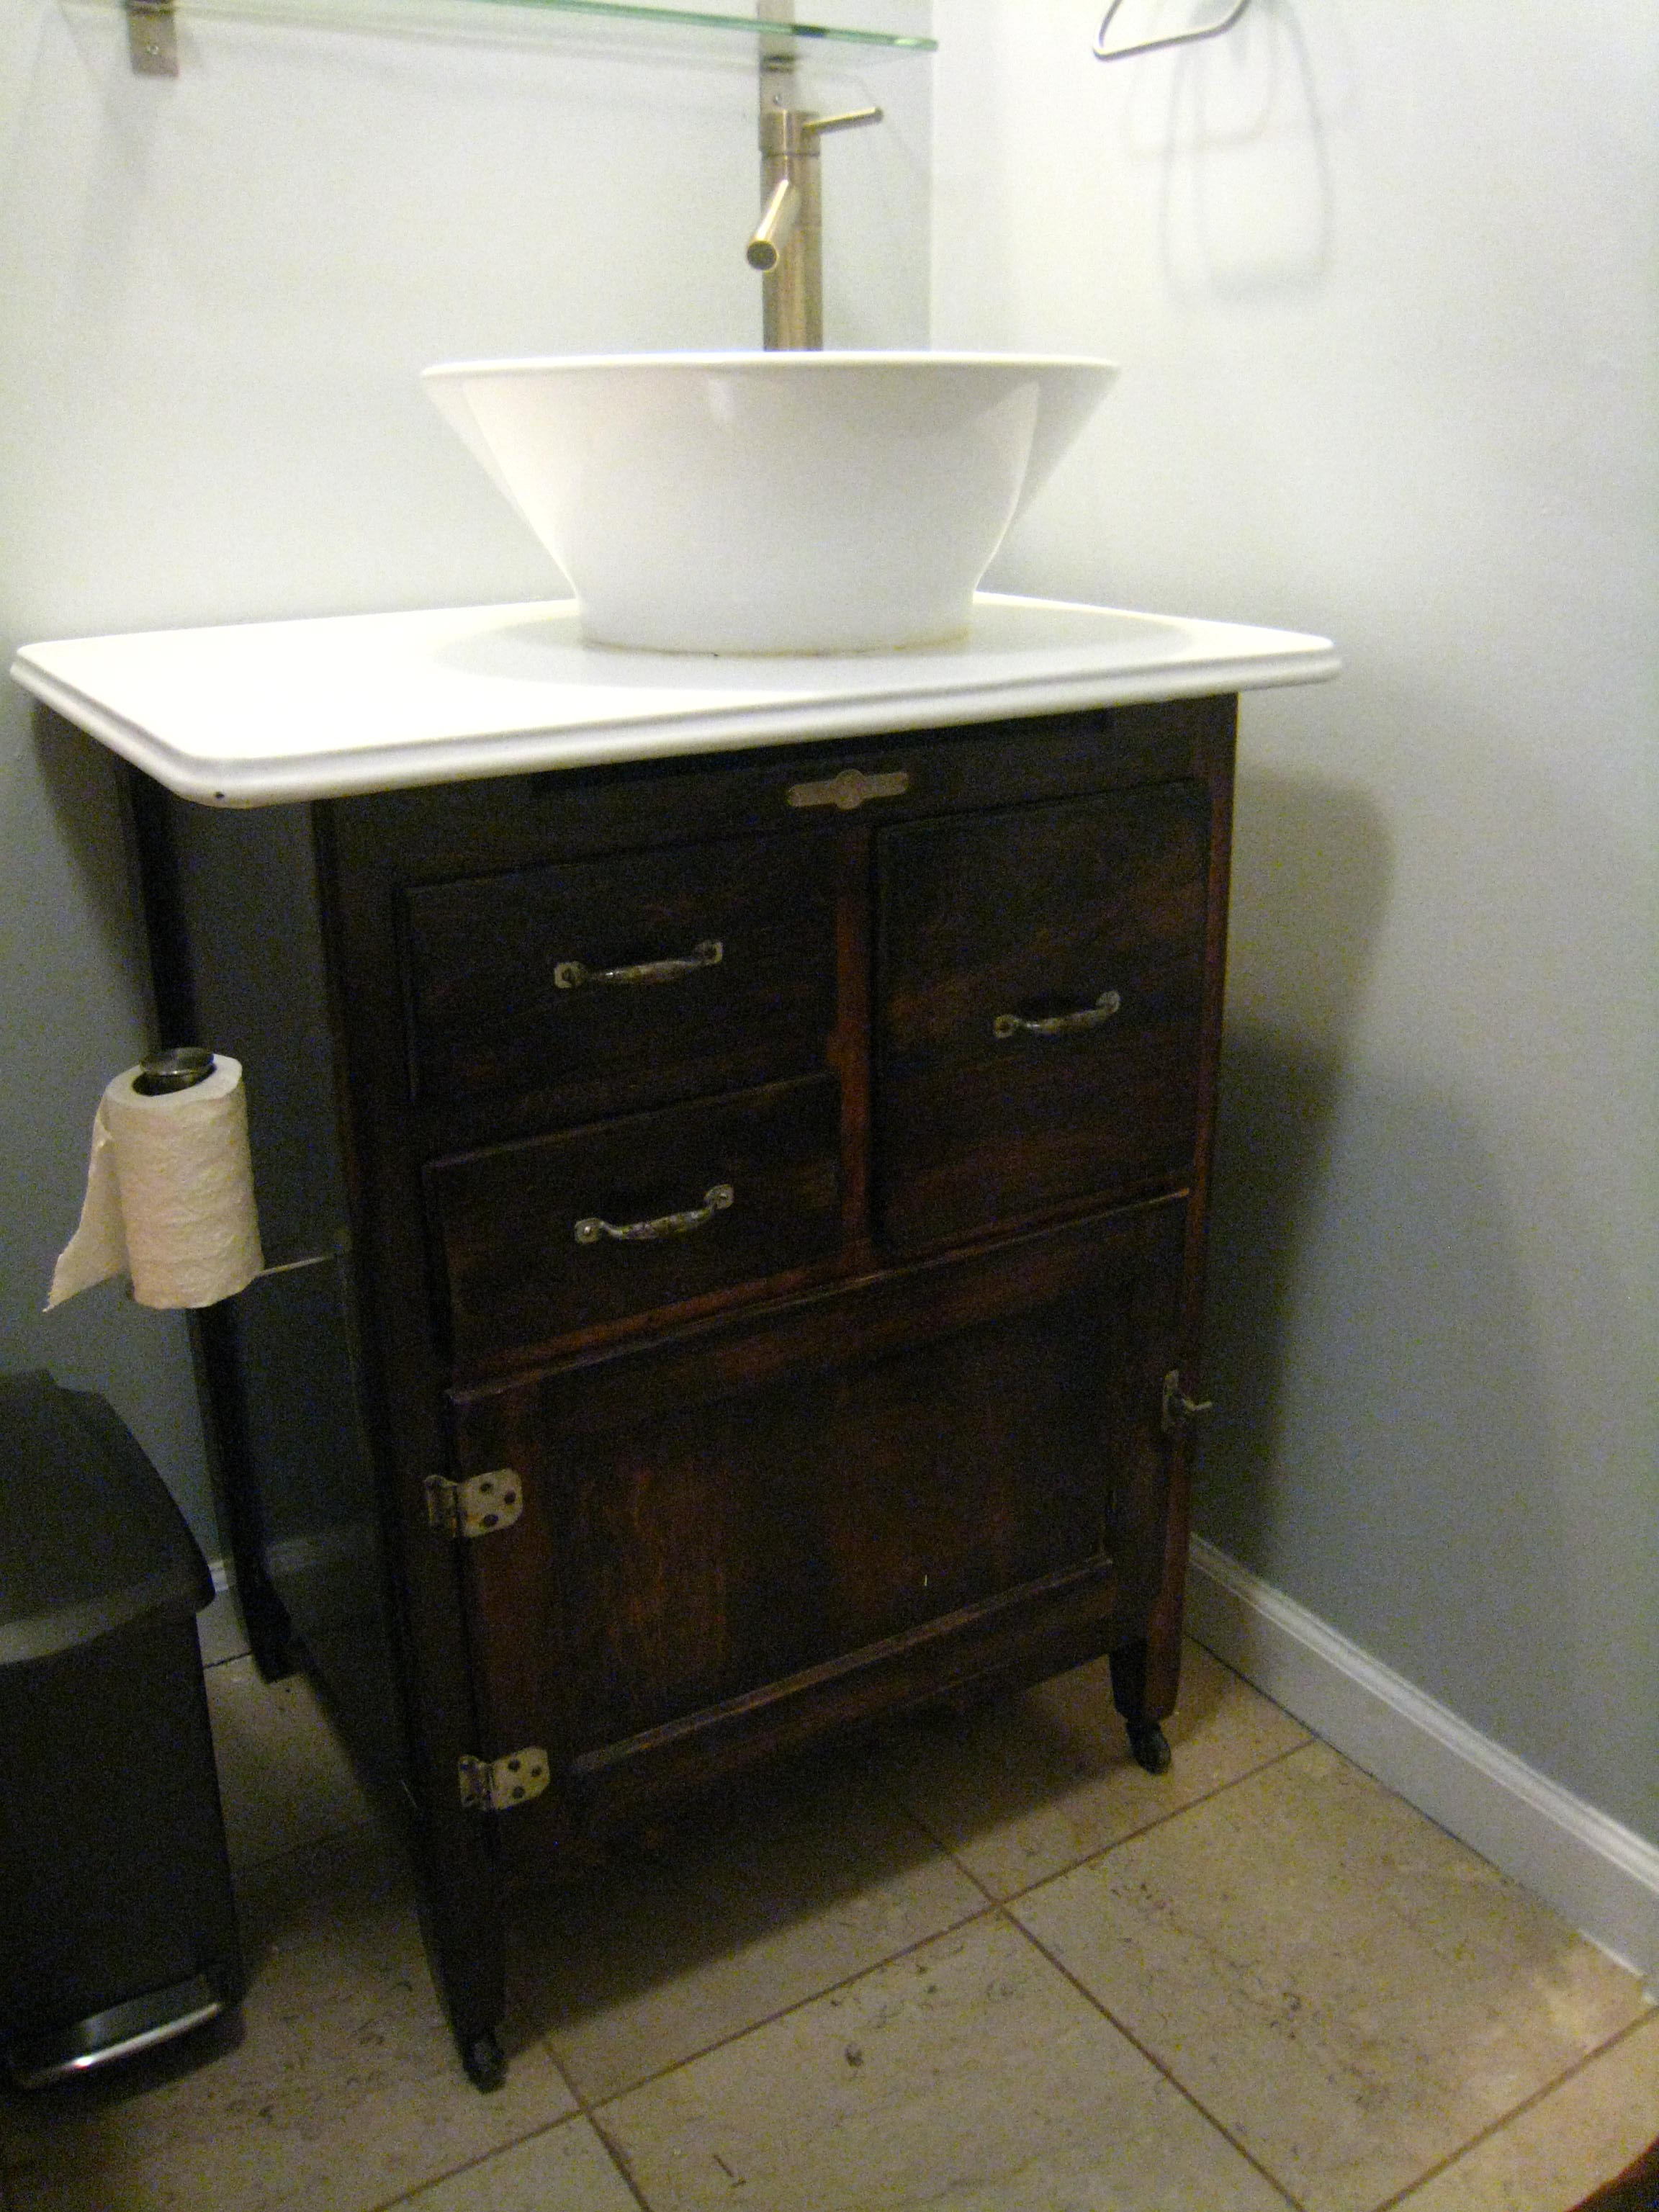 Bathroom Sink Cabinet Ideas: Creative Homemade Bath Vanity Bathroom Sink Cabinet Ideas